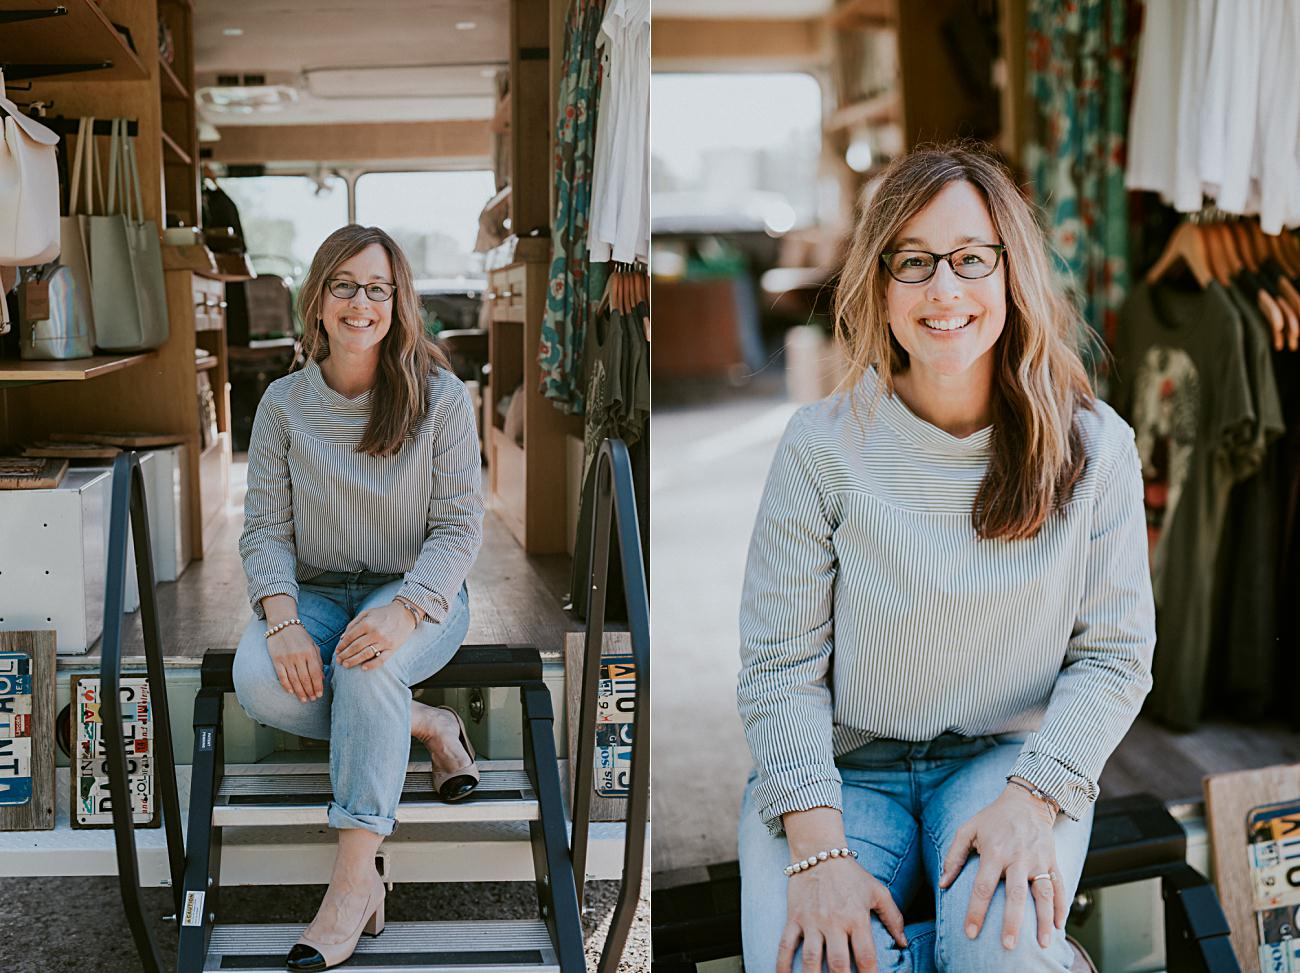 Headshot Photography, Branding Photography in Madison Wisconsin, Truck Boutique, Product Photography, Commercial Photography, Shop Small, Madison Wisconsin